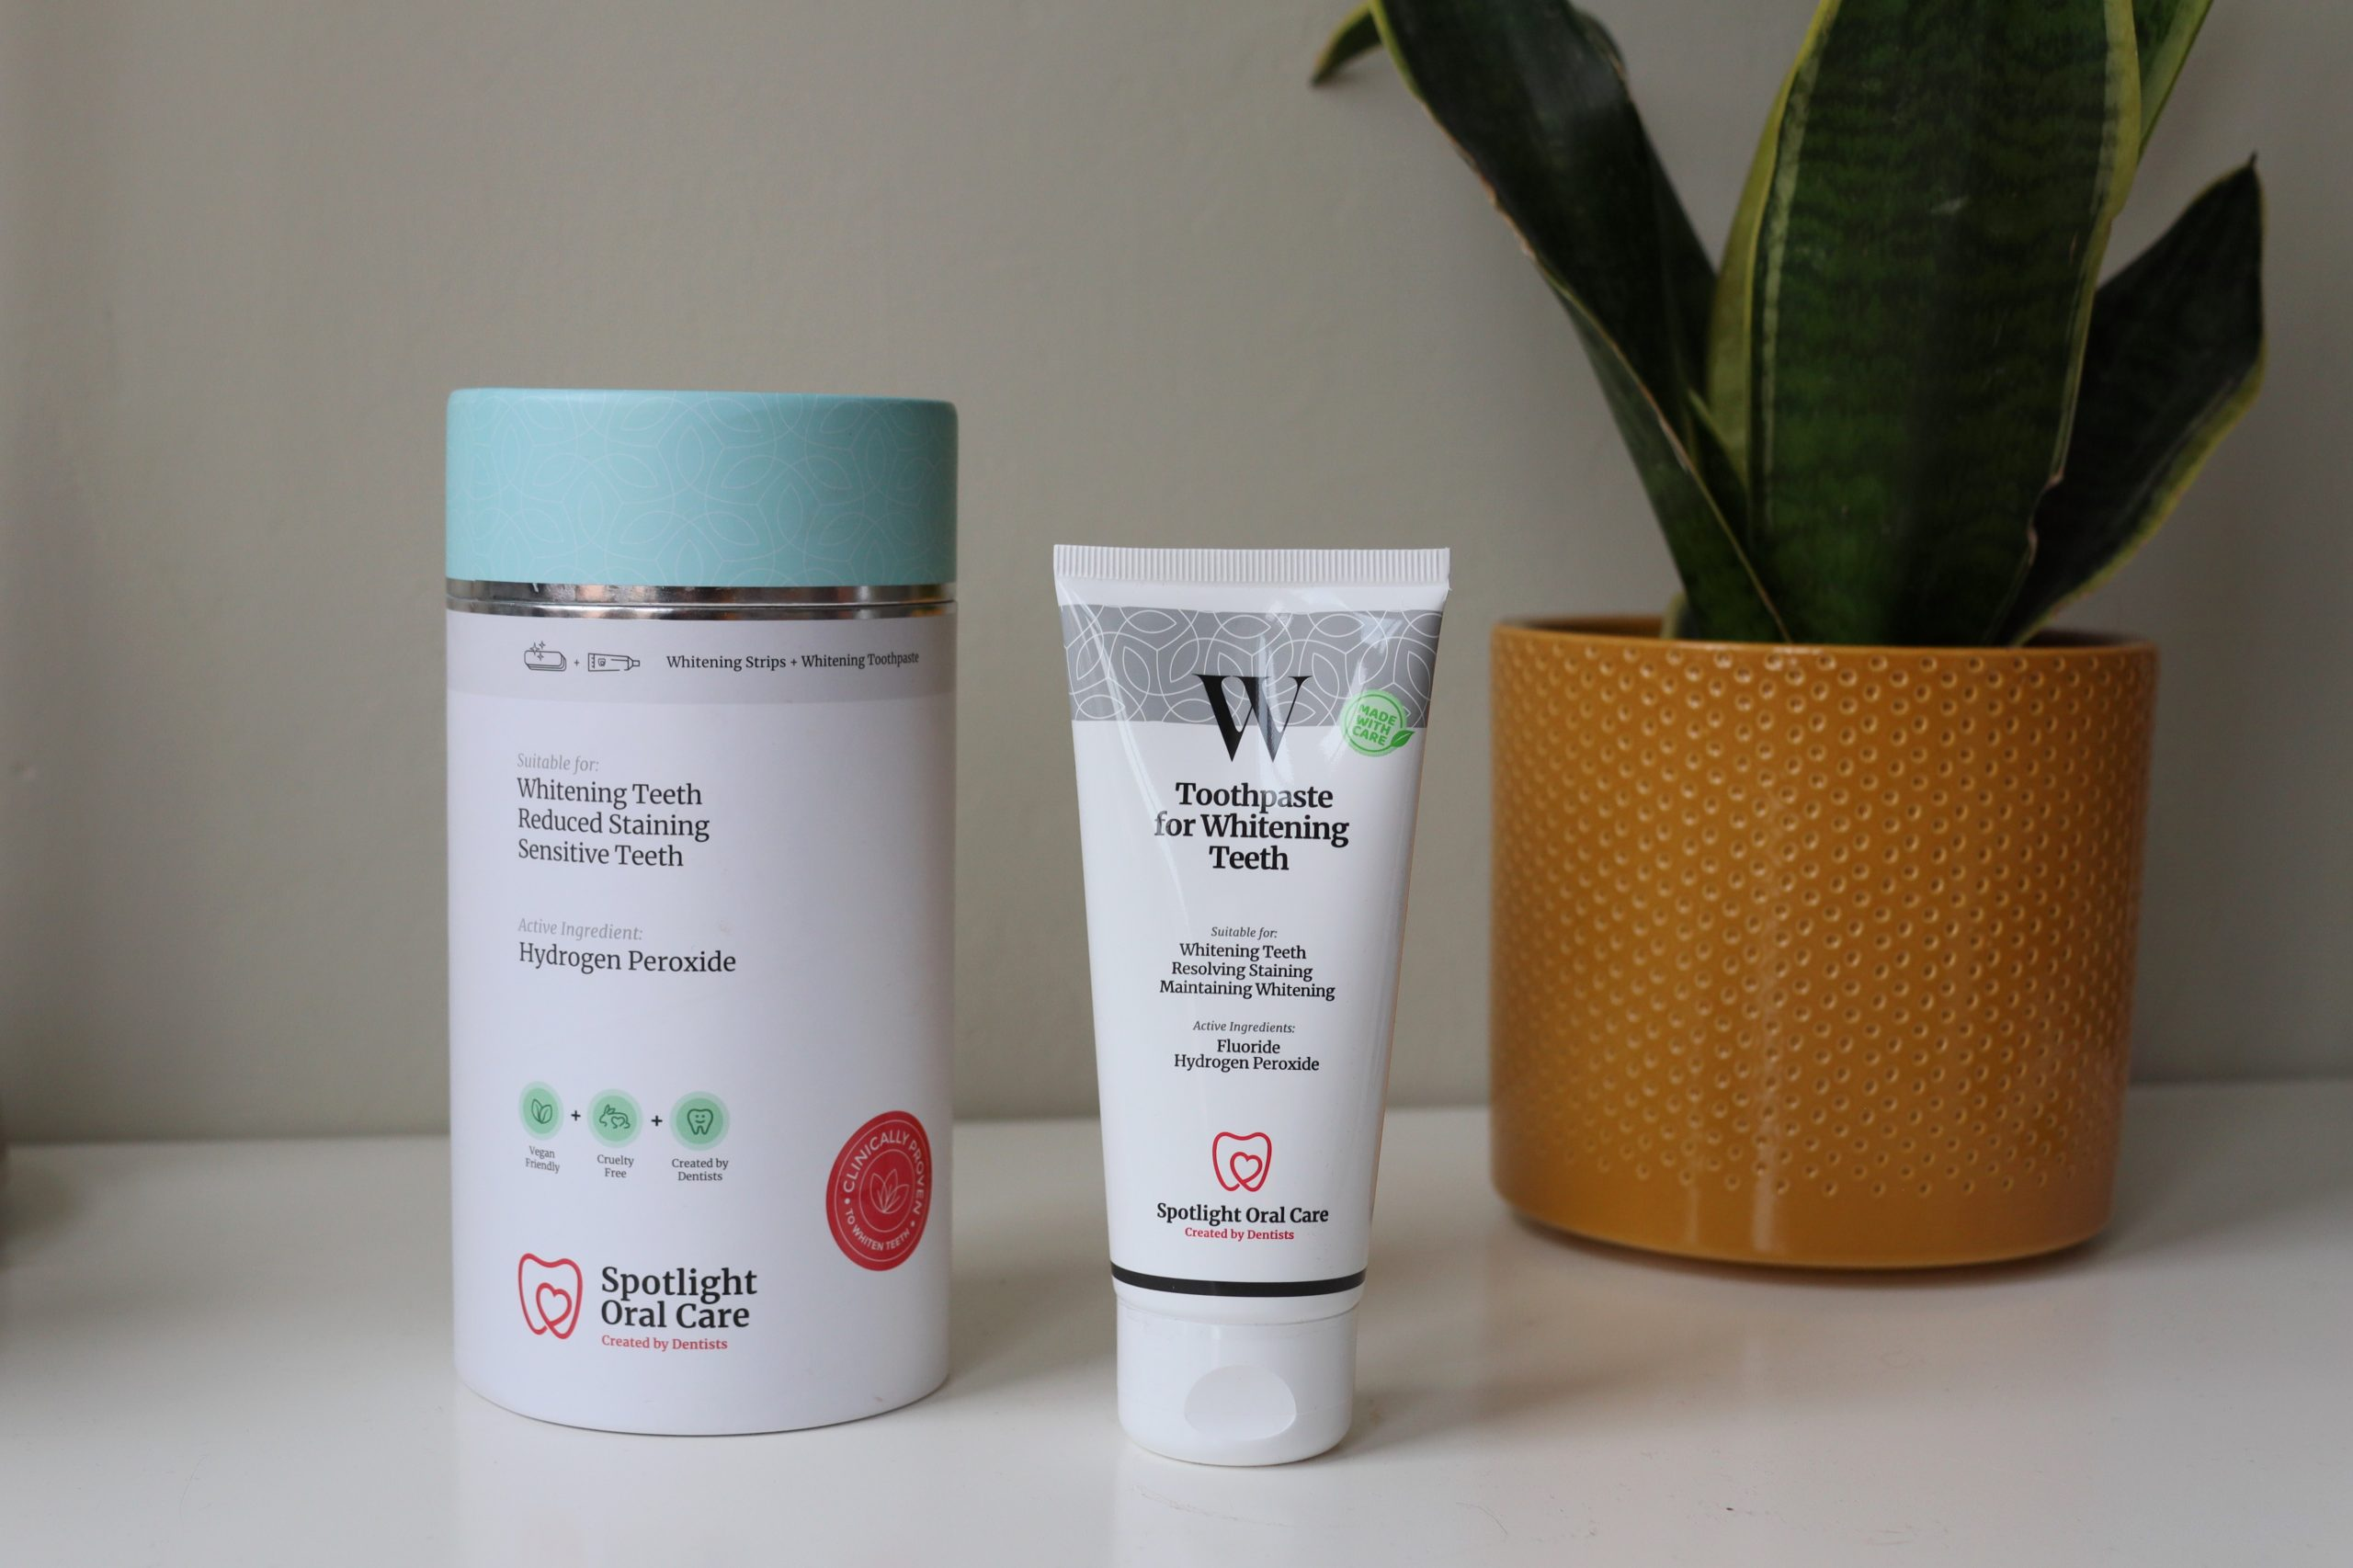 Spotlight Teeth Whitening System, a toothpaste and the container stand on a desk for this review